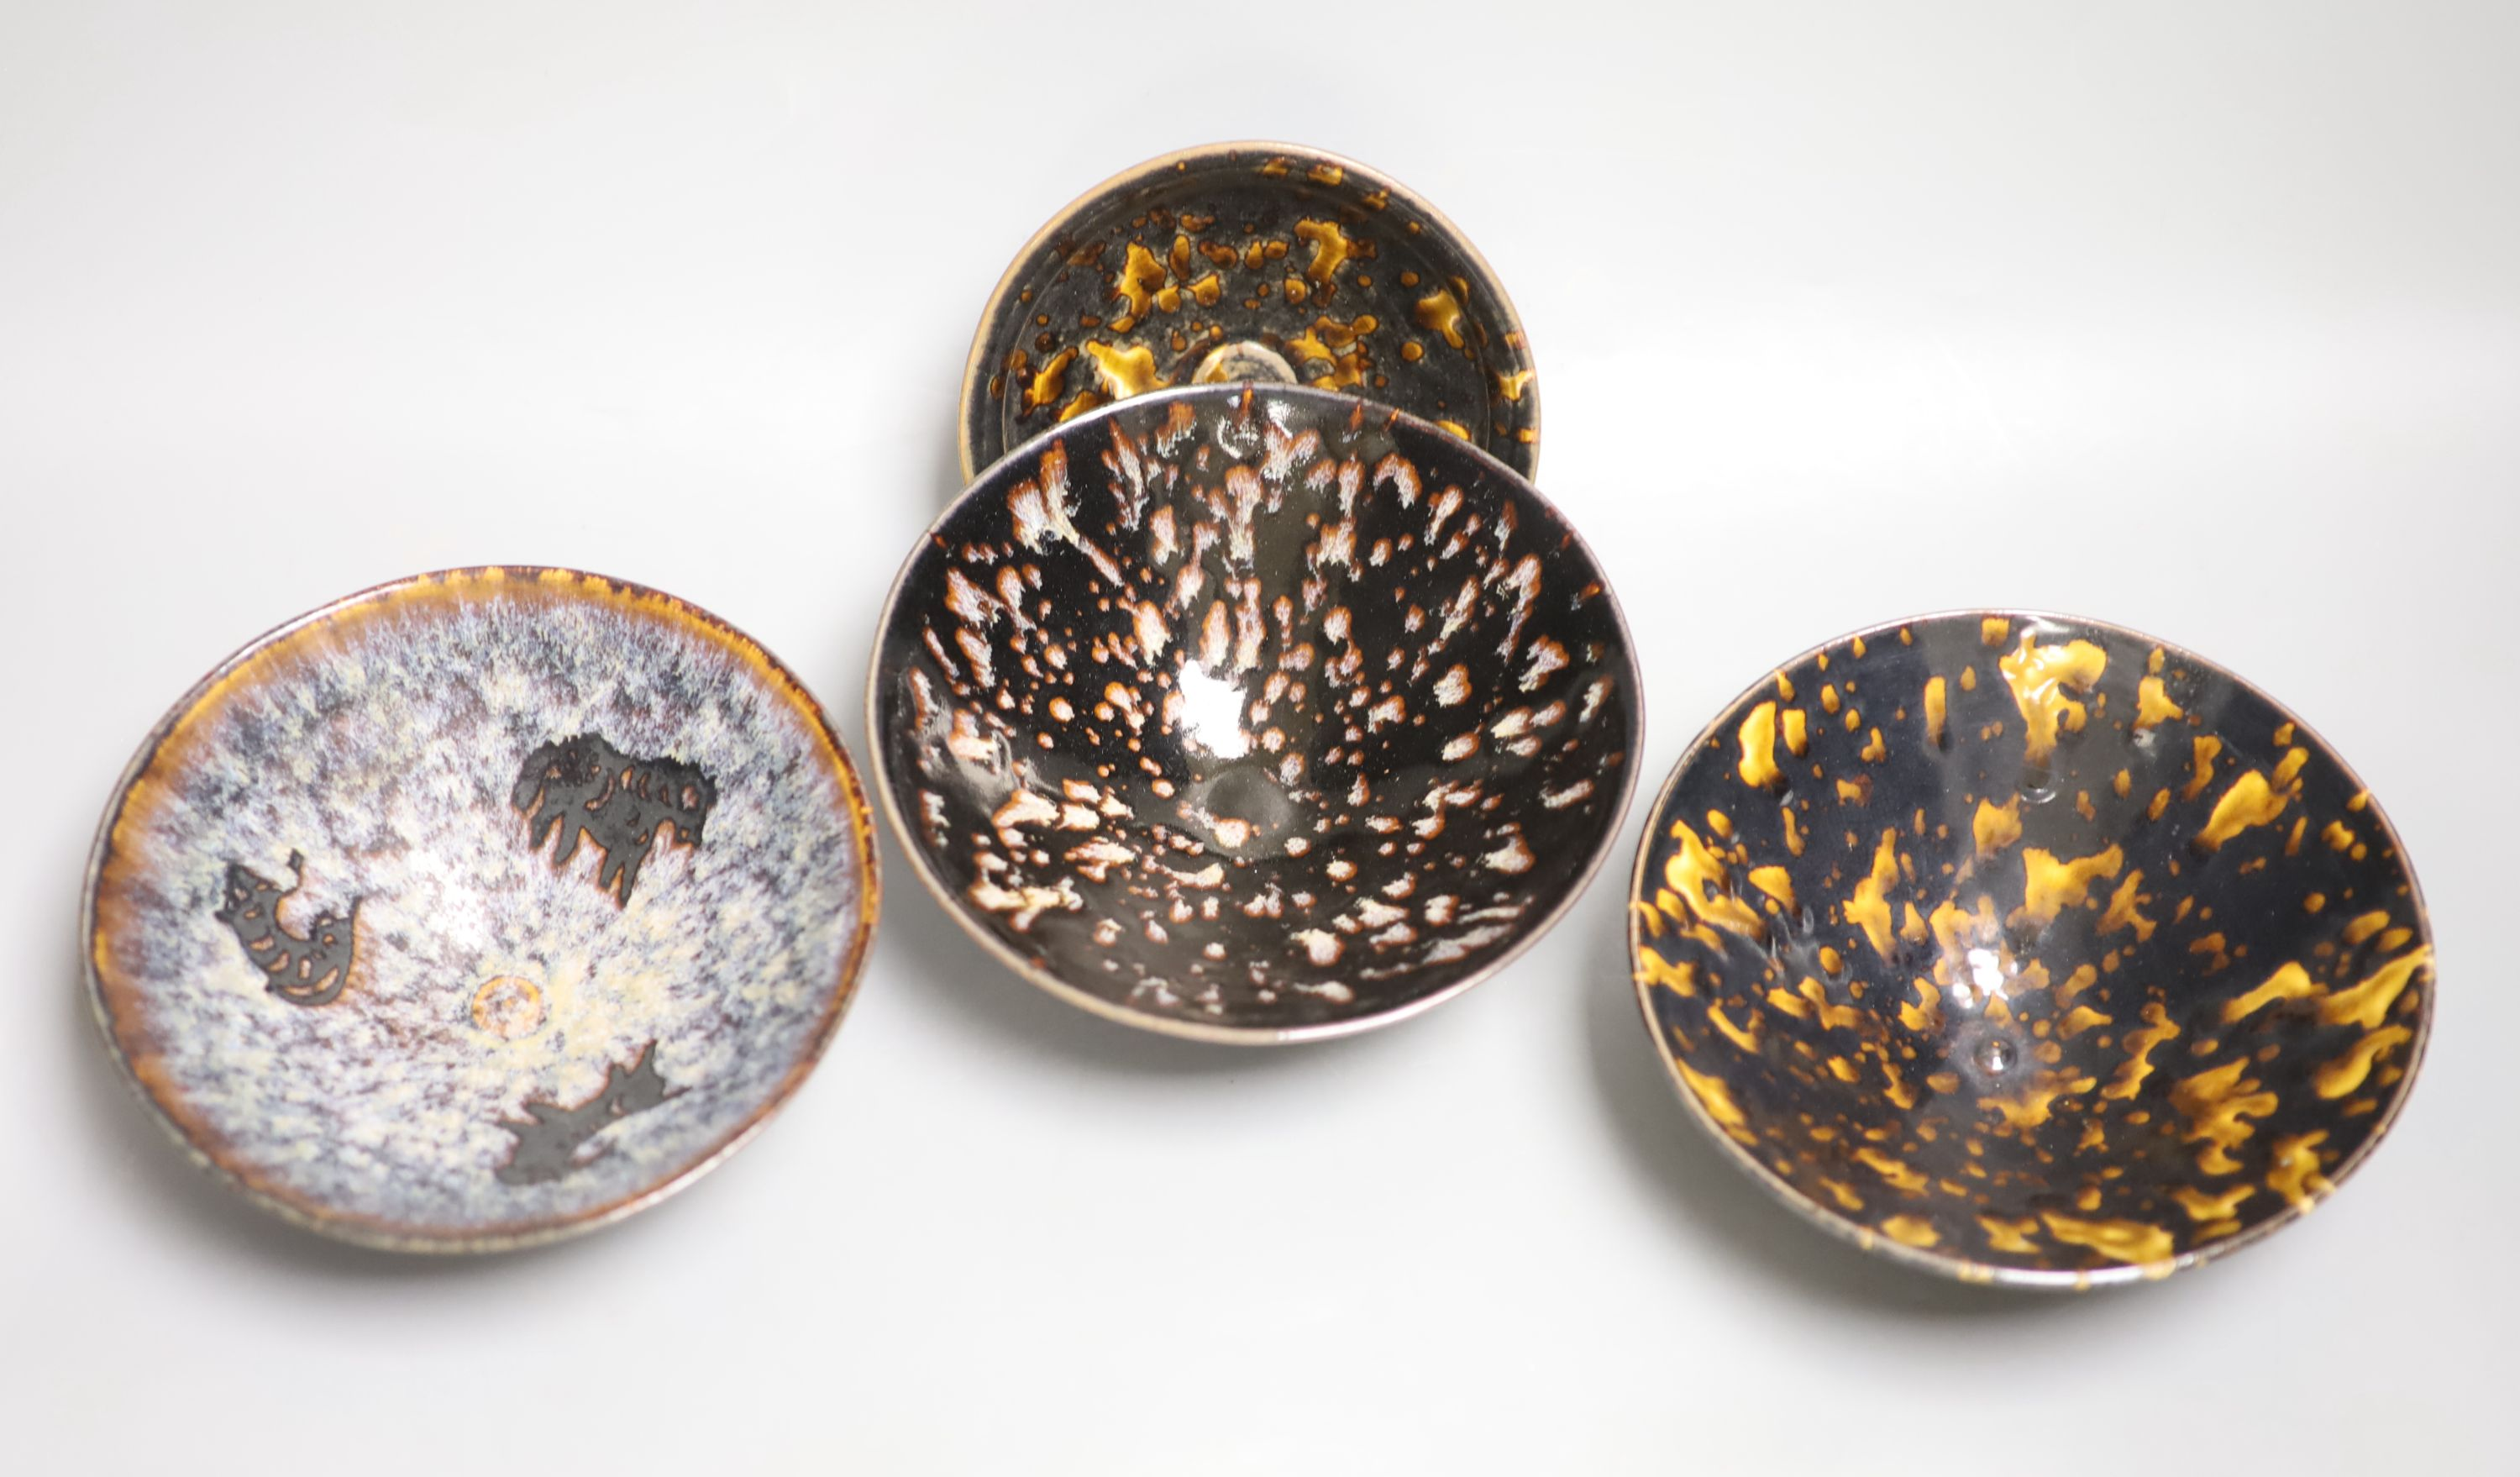 Four Chinese splash glaze bowls, diameter 16cmCONDITION: Good condition. - Image 2 of 4